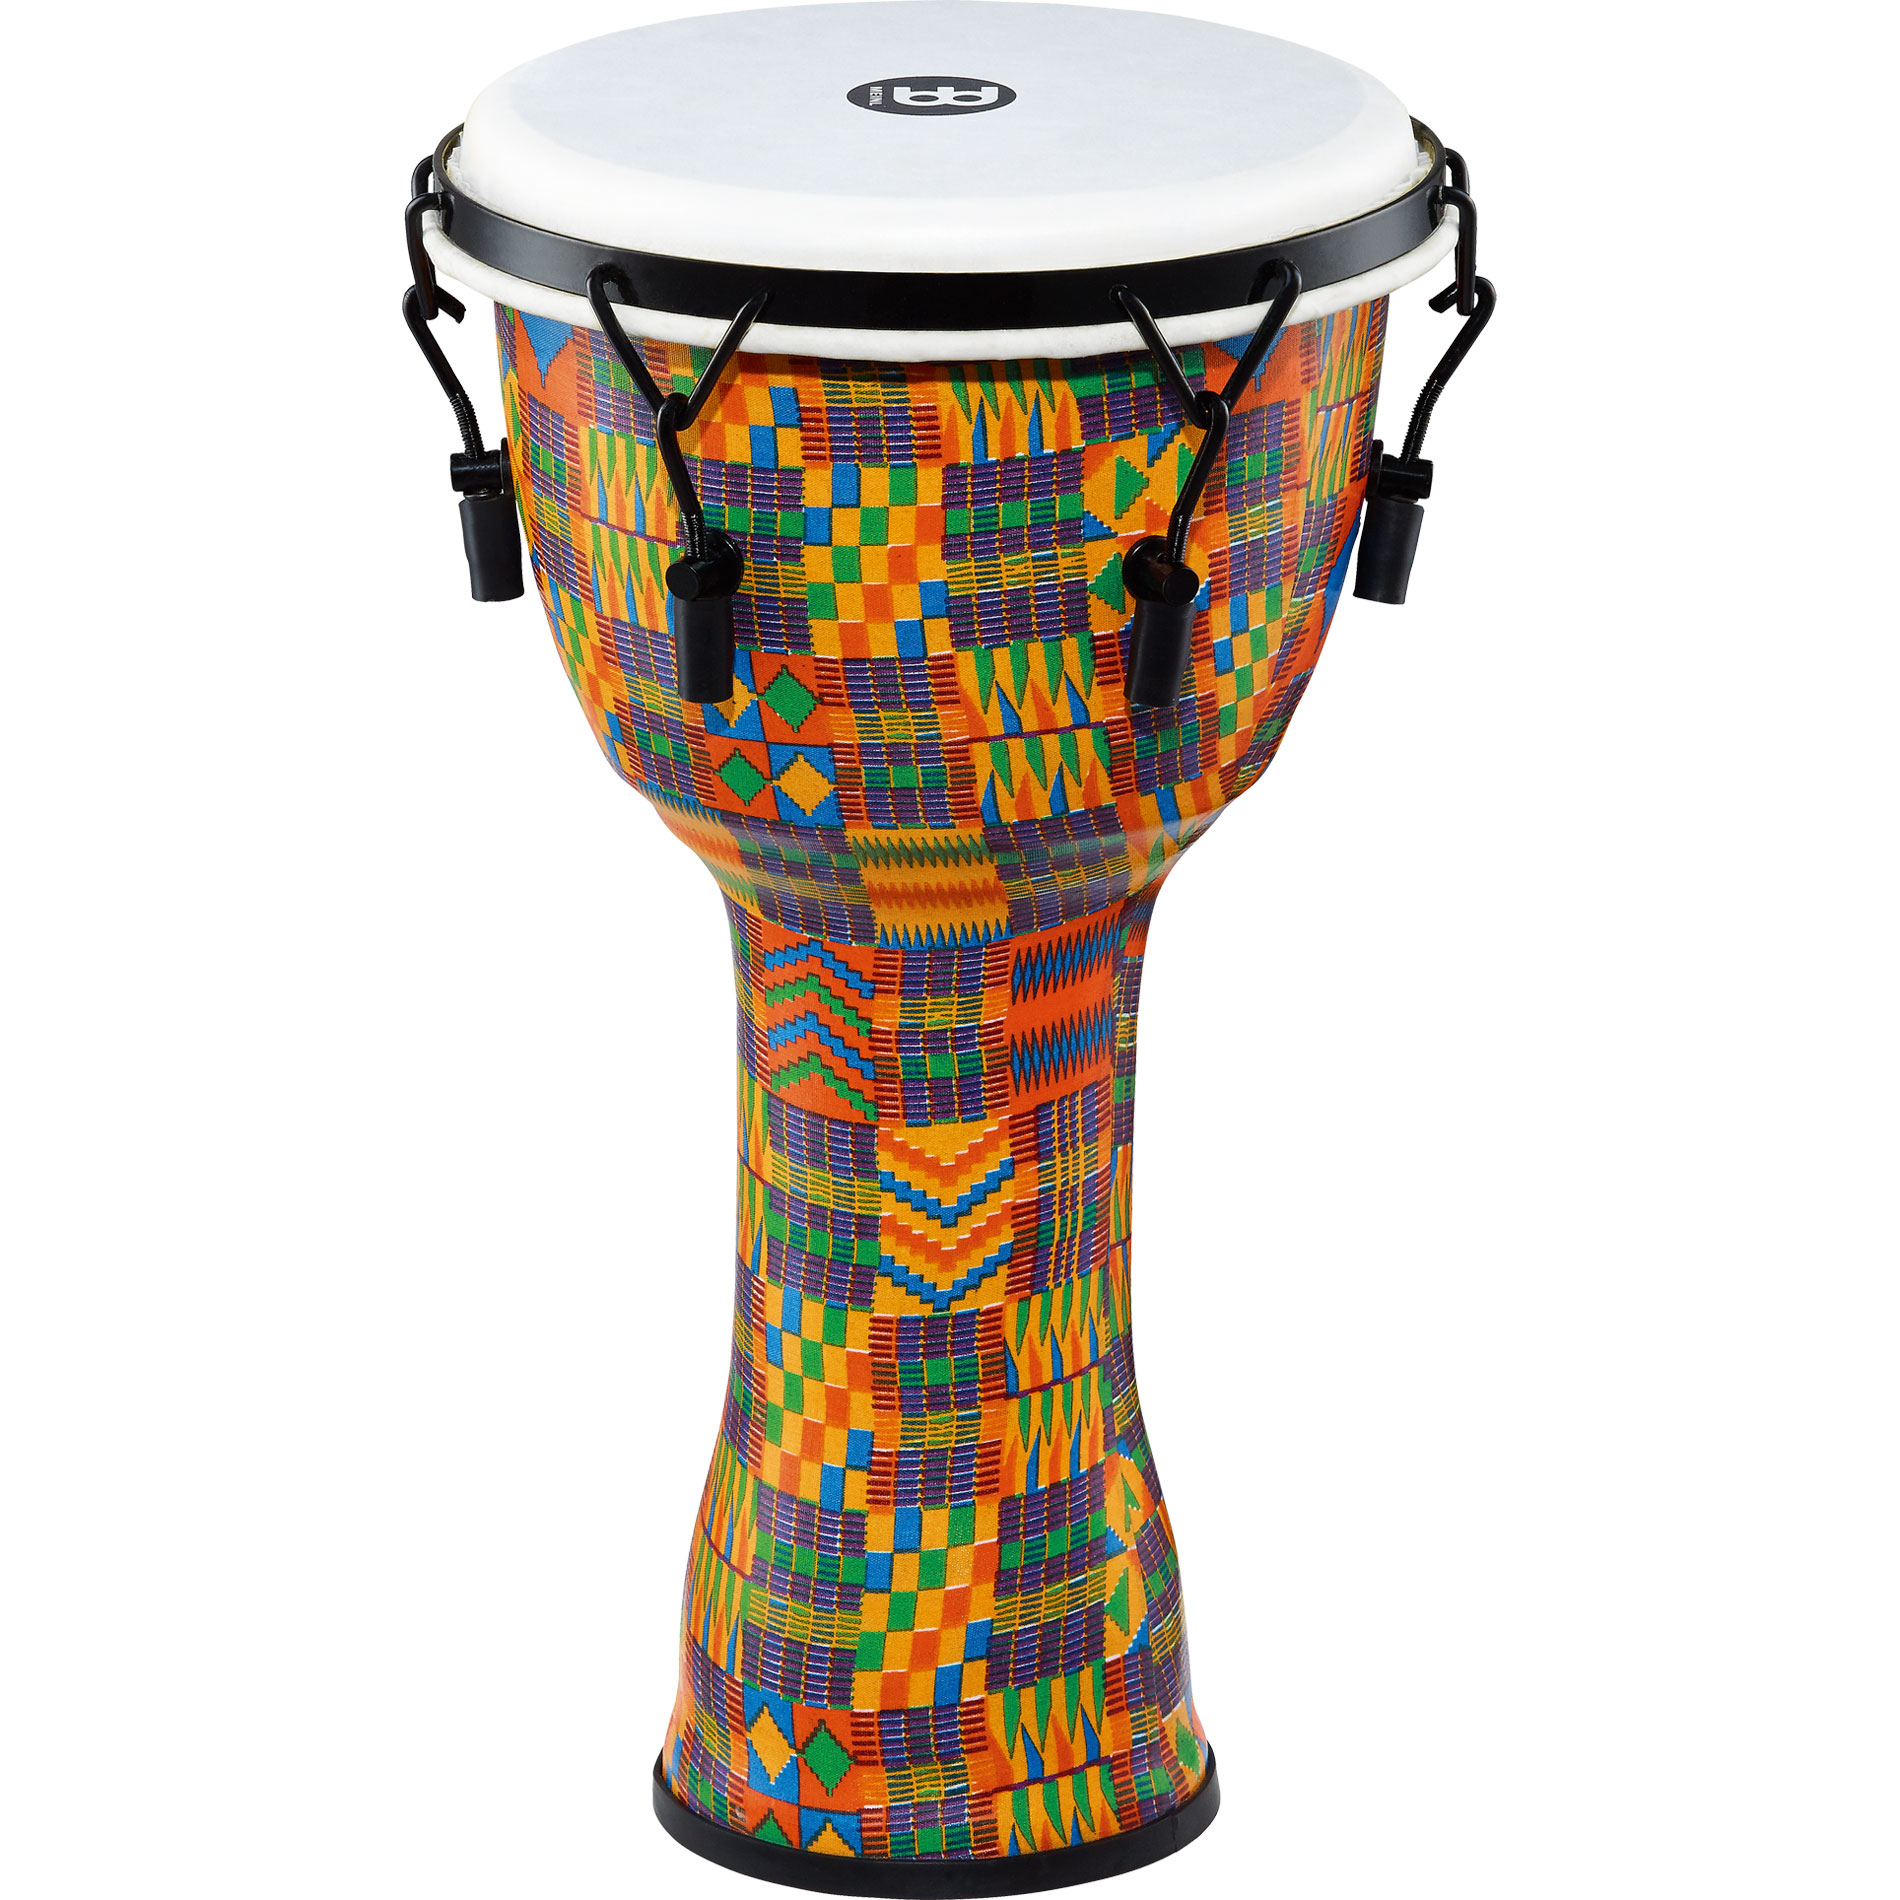 "Meinl 10"" Mechanically-Tuned Travel Djembe in Kenyan Quilt with Synthetic Head"